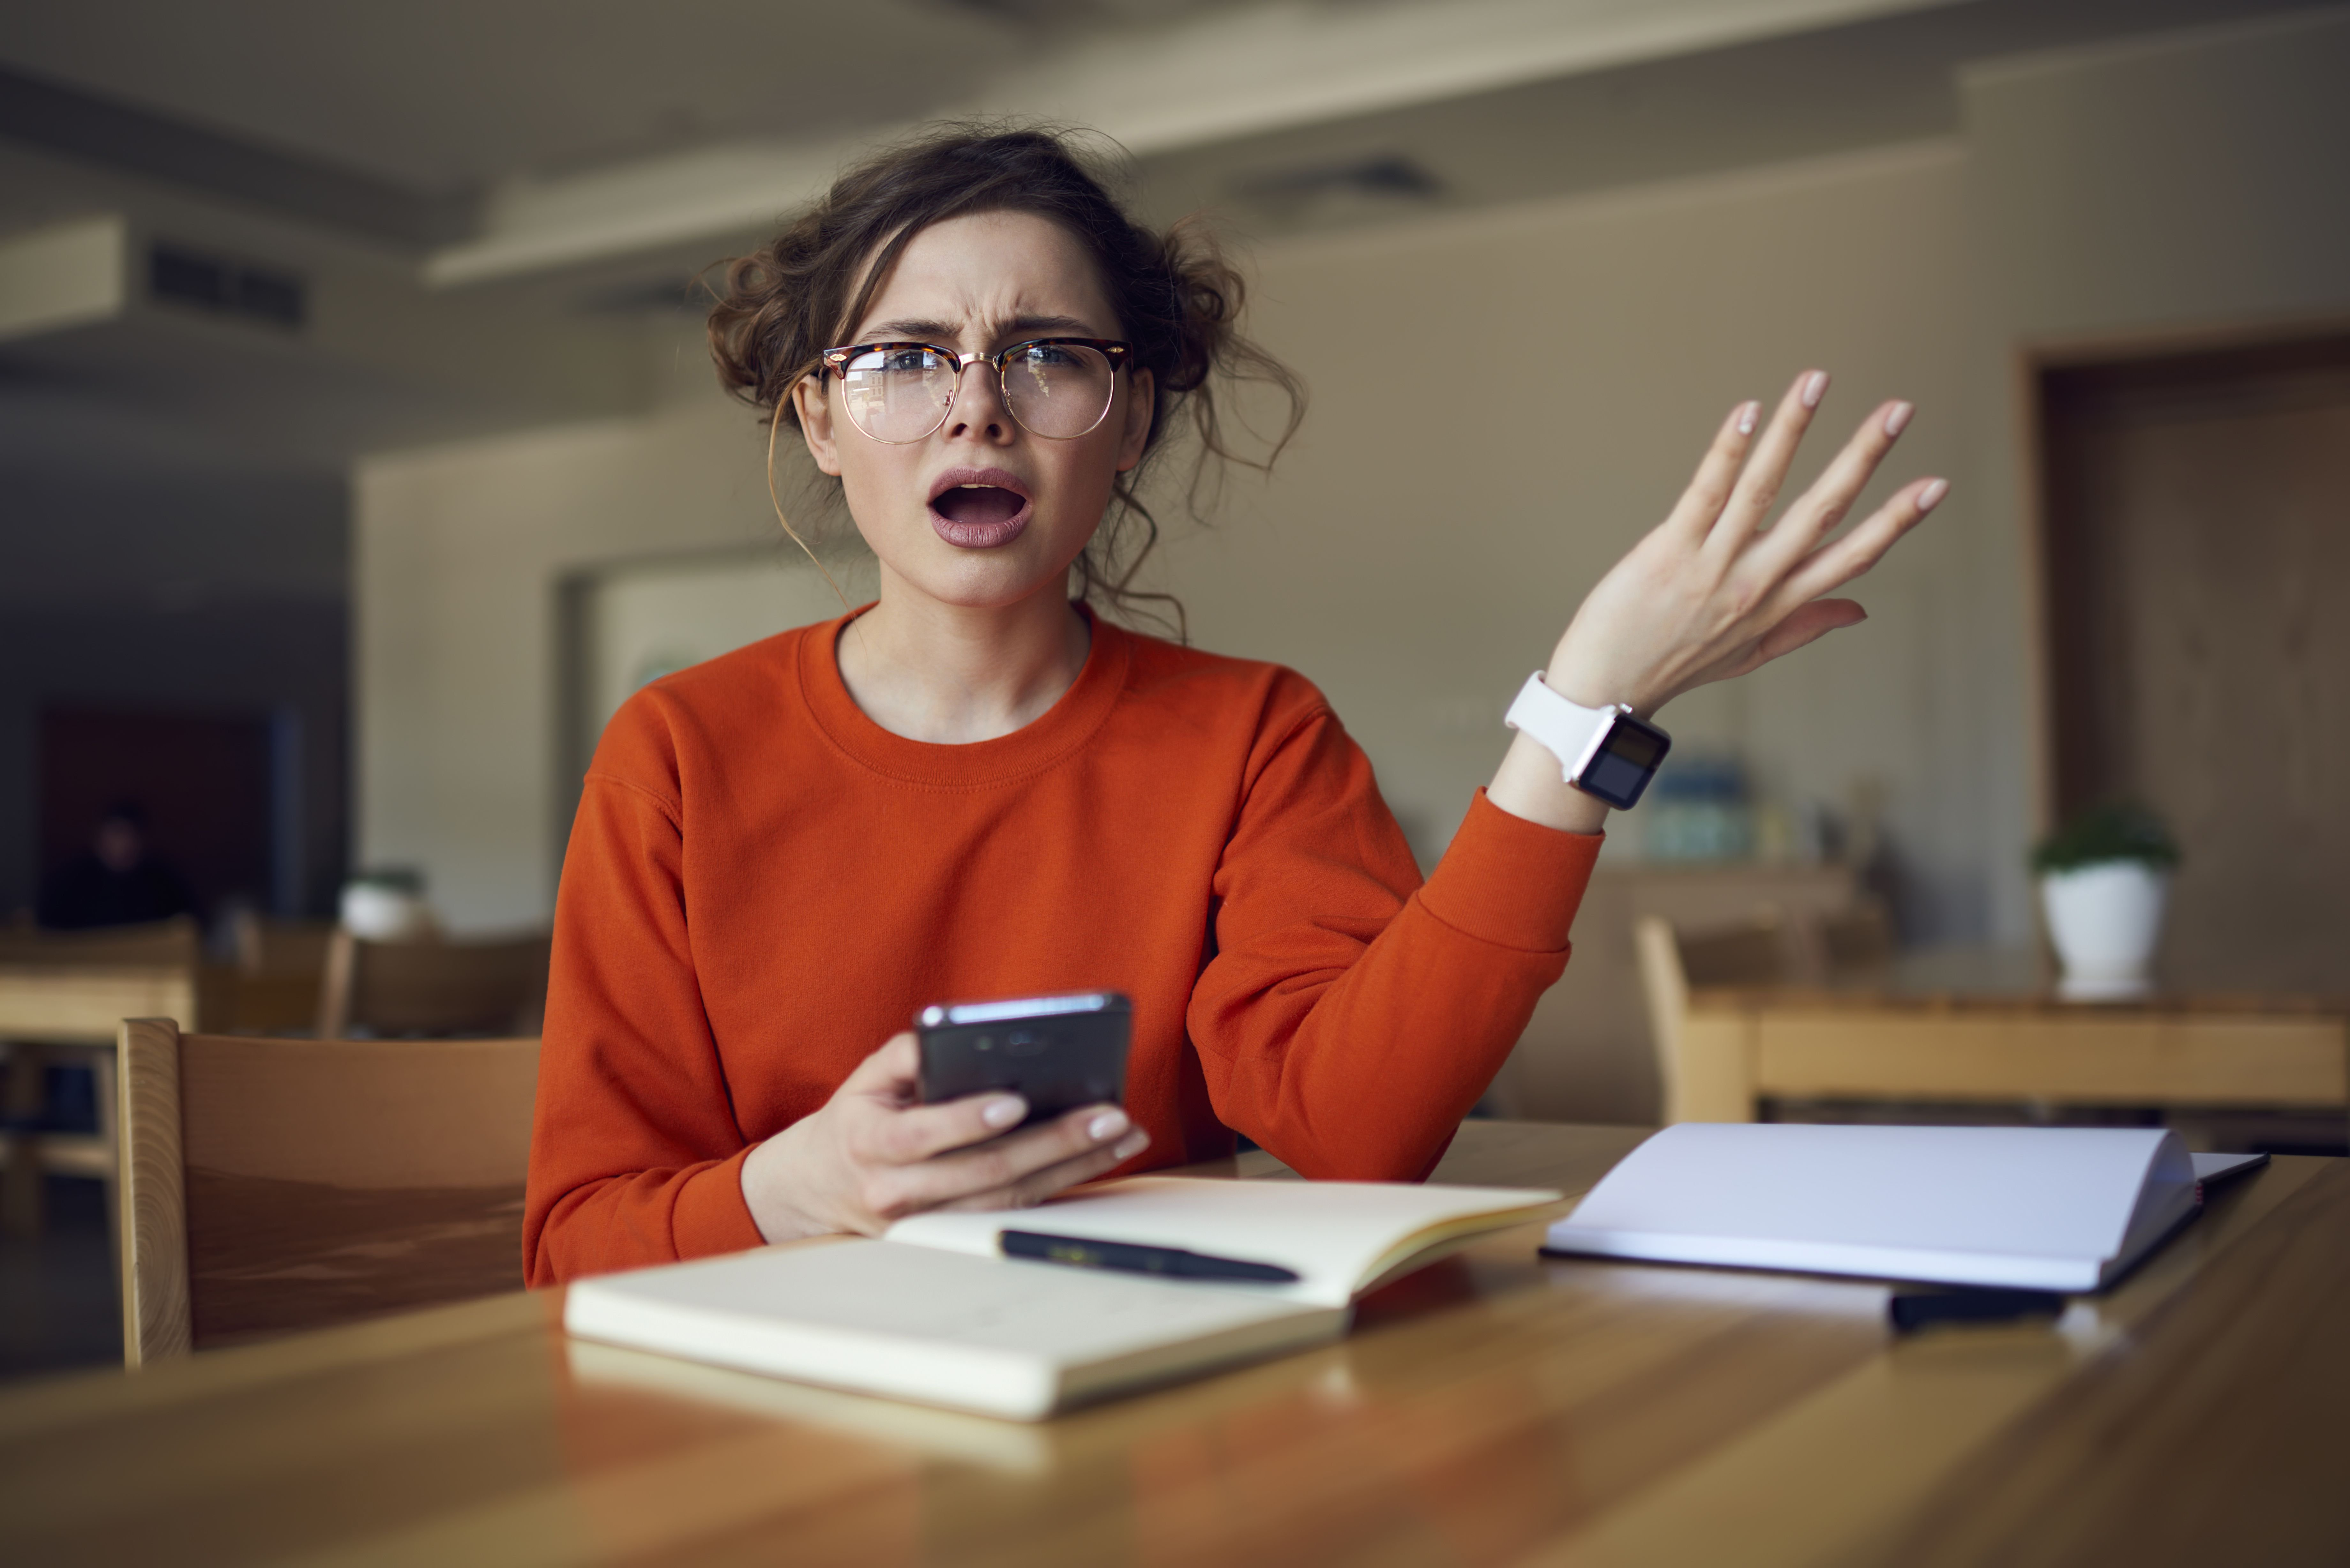 A woman in disbelief as she looks at her phone. | Source: Shutterstock